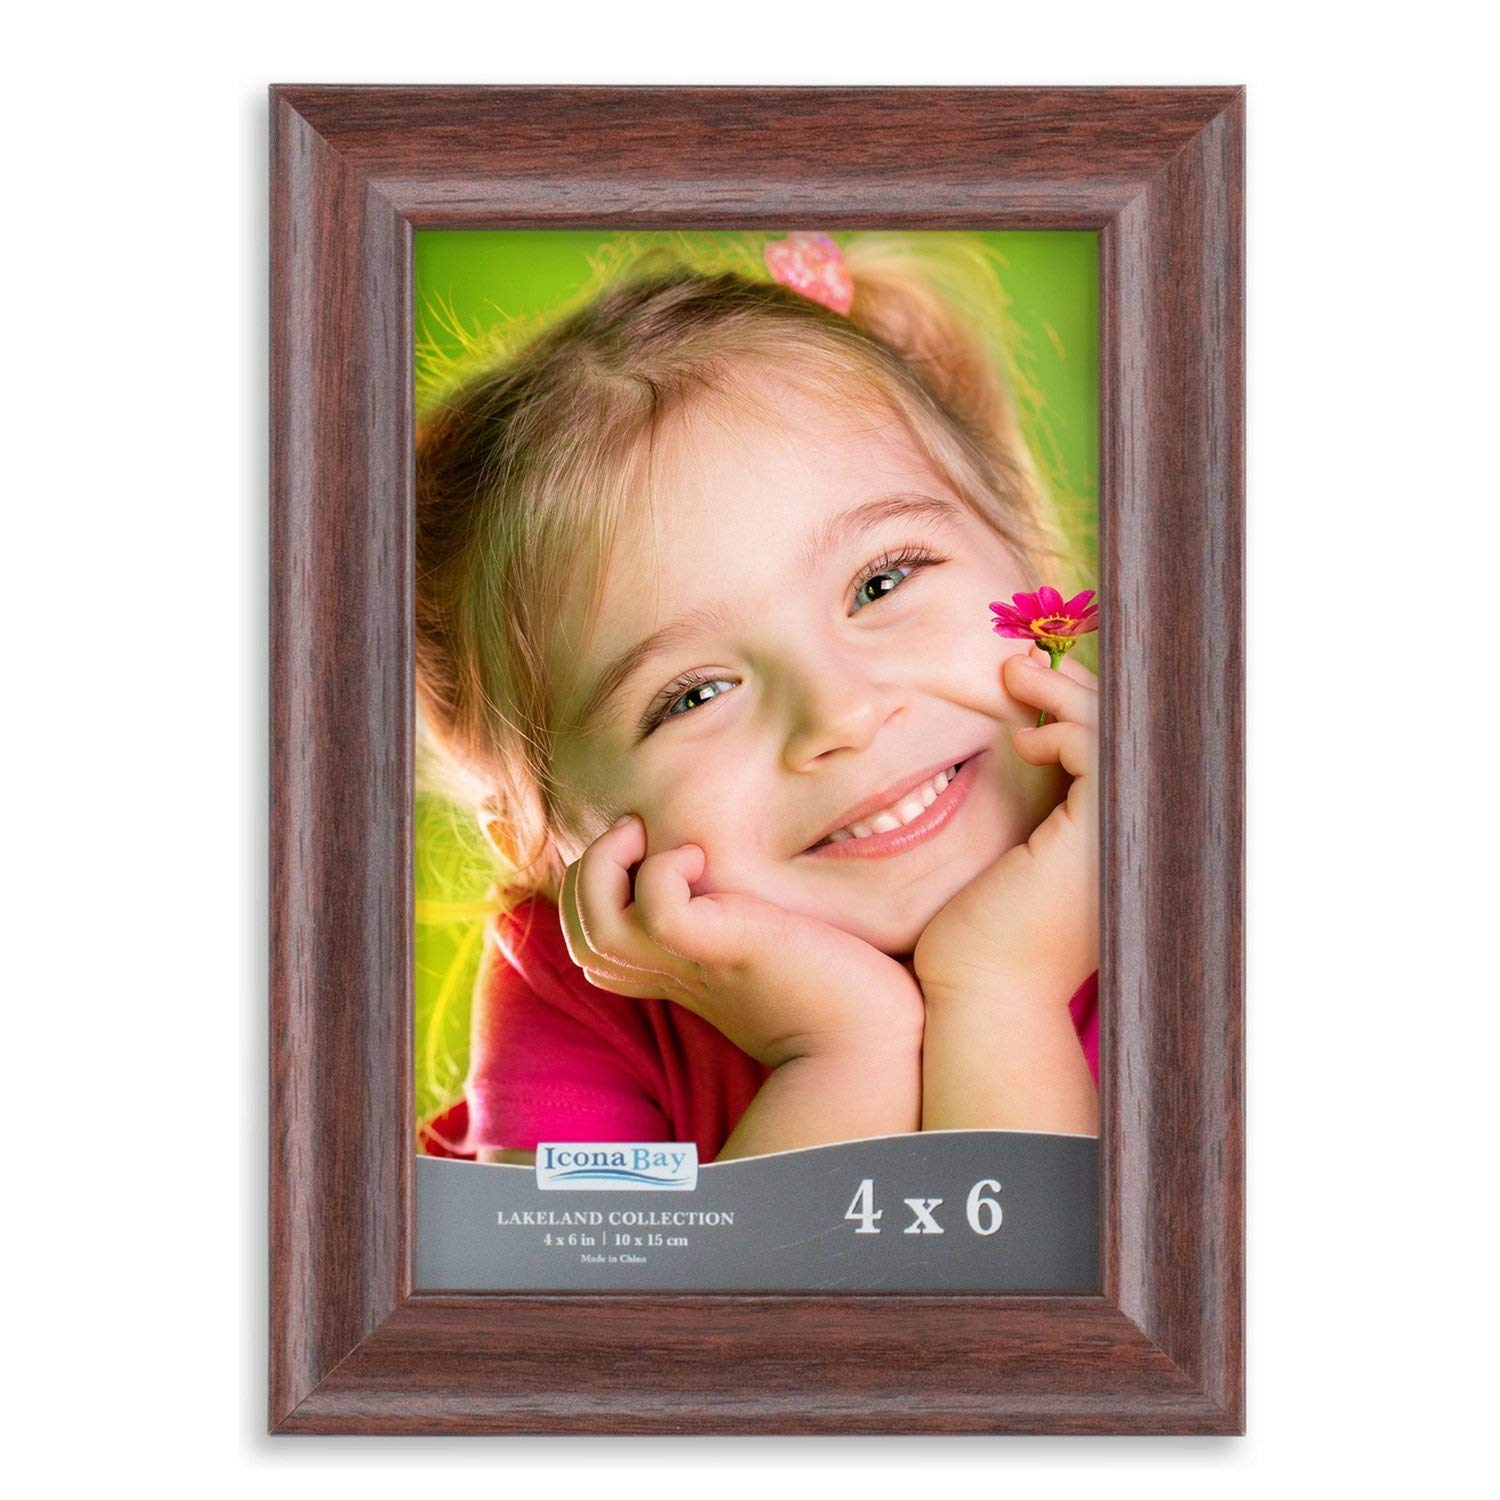 Icona Bay Picture Frame 4x6 (1 Pack, Teak Wood Finish), Photo Frames 4 by 6, Picture Frames 4 x 6, Wooden Photo Frames 4x6, Wood Photo Frame for Walls or Tables, Lakeland Collection